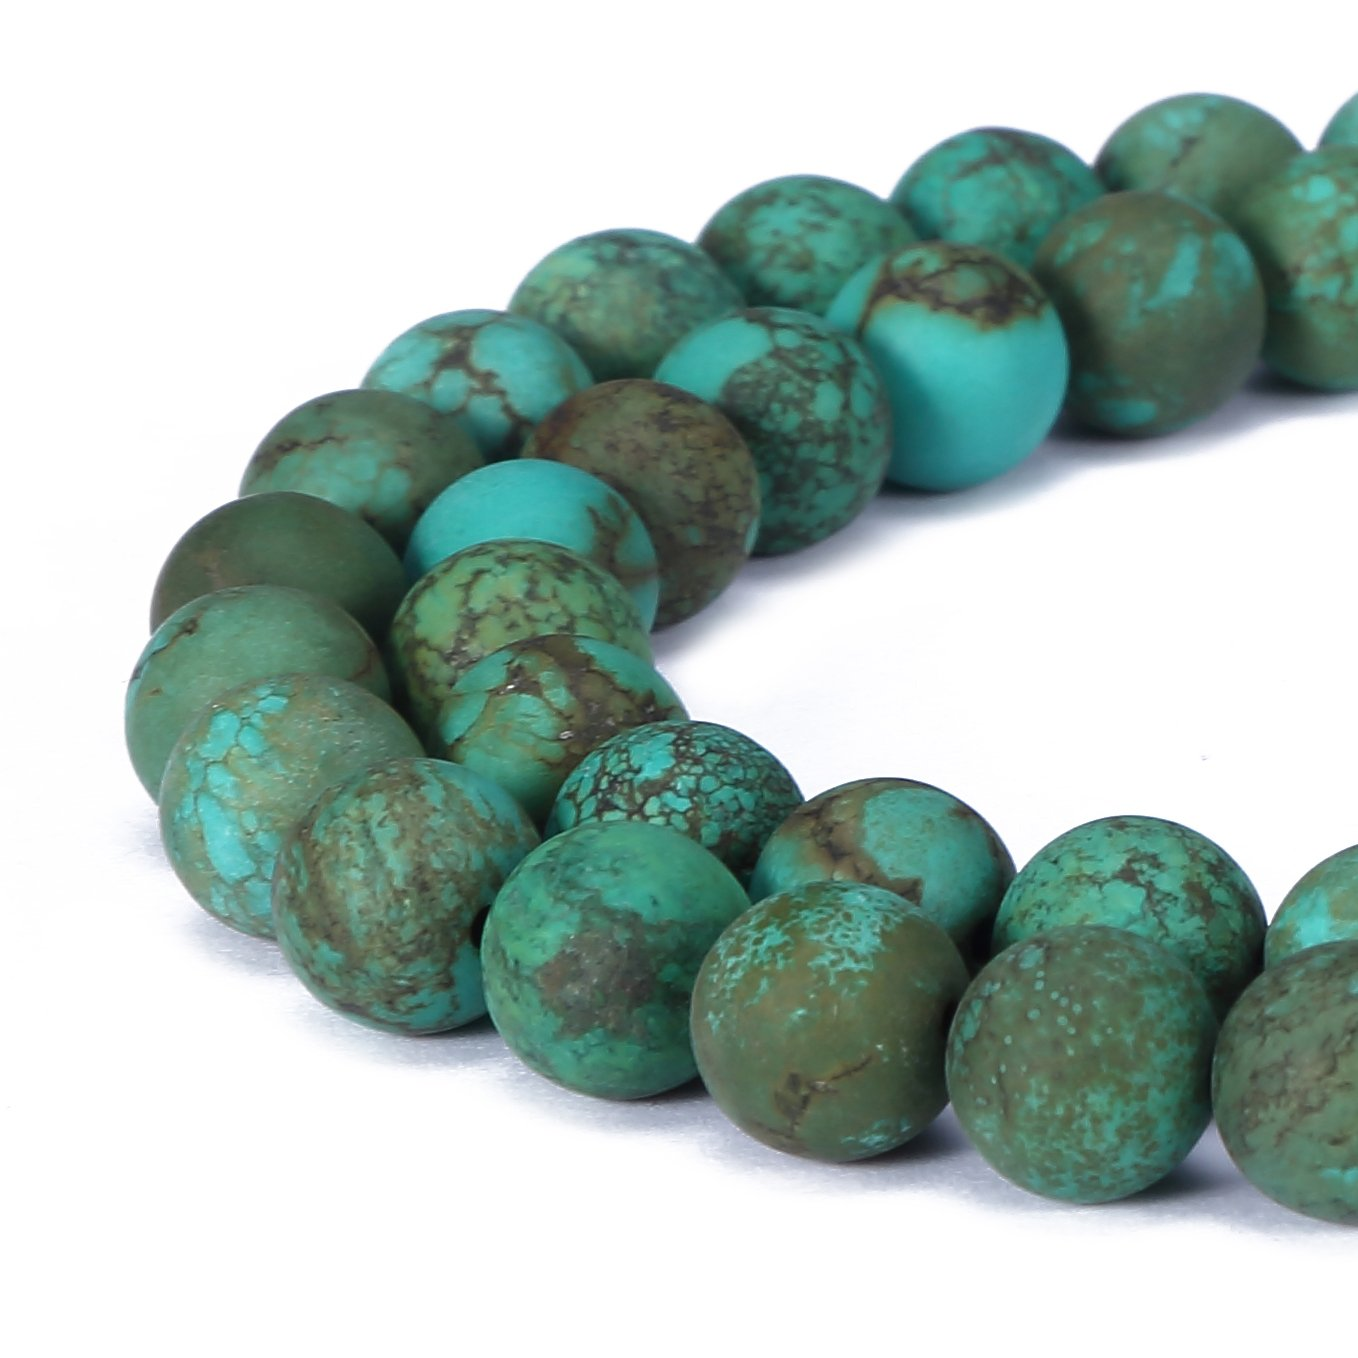 BRCbeads Chinese Turquoise Natural Gemstone Loose Beads 6mm Matte Round Crystal Energy Stone Healing Power for Jewelry Making- Dark Green